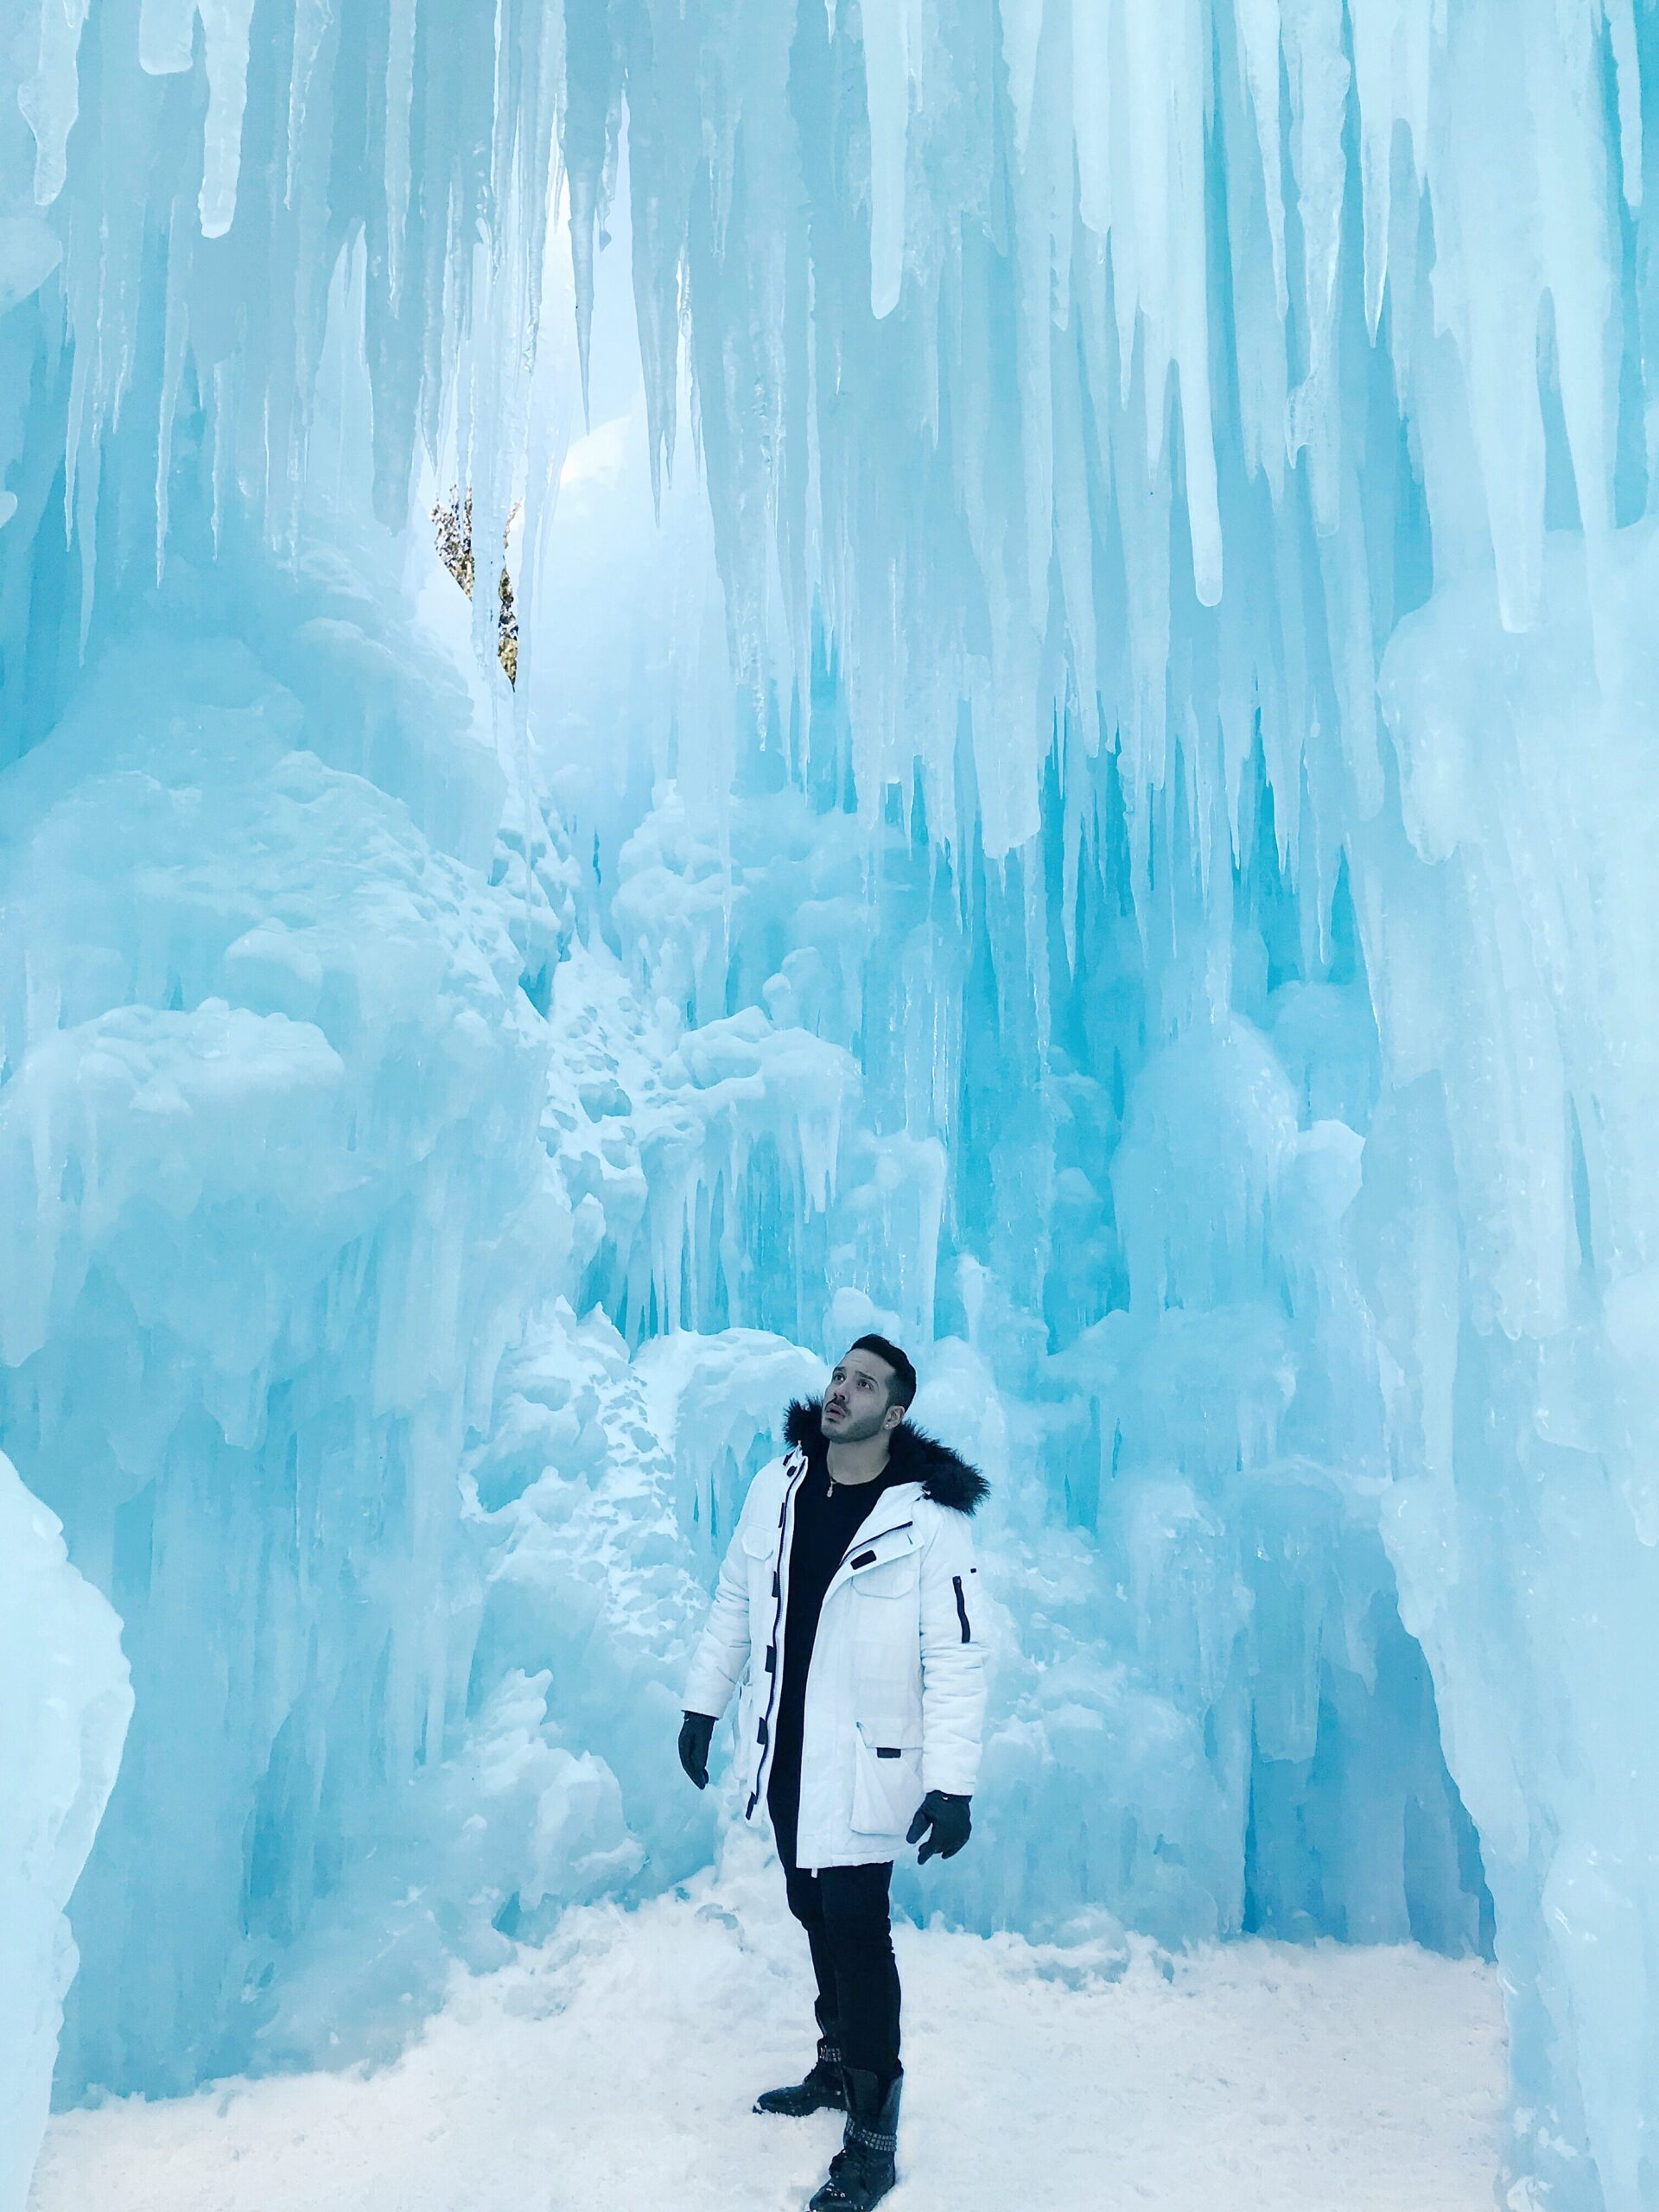 best winter vacations for families, travel guide, amazon fashion outfits ice castles outfit, ice castles photoshoot, top things to do nh, new england travel guide Disney Frozen Winter Wonderland real life Arendelle